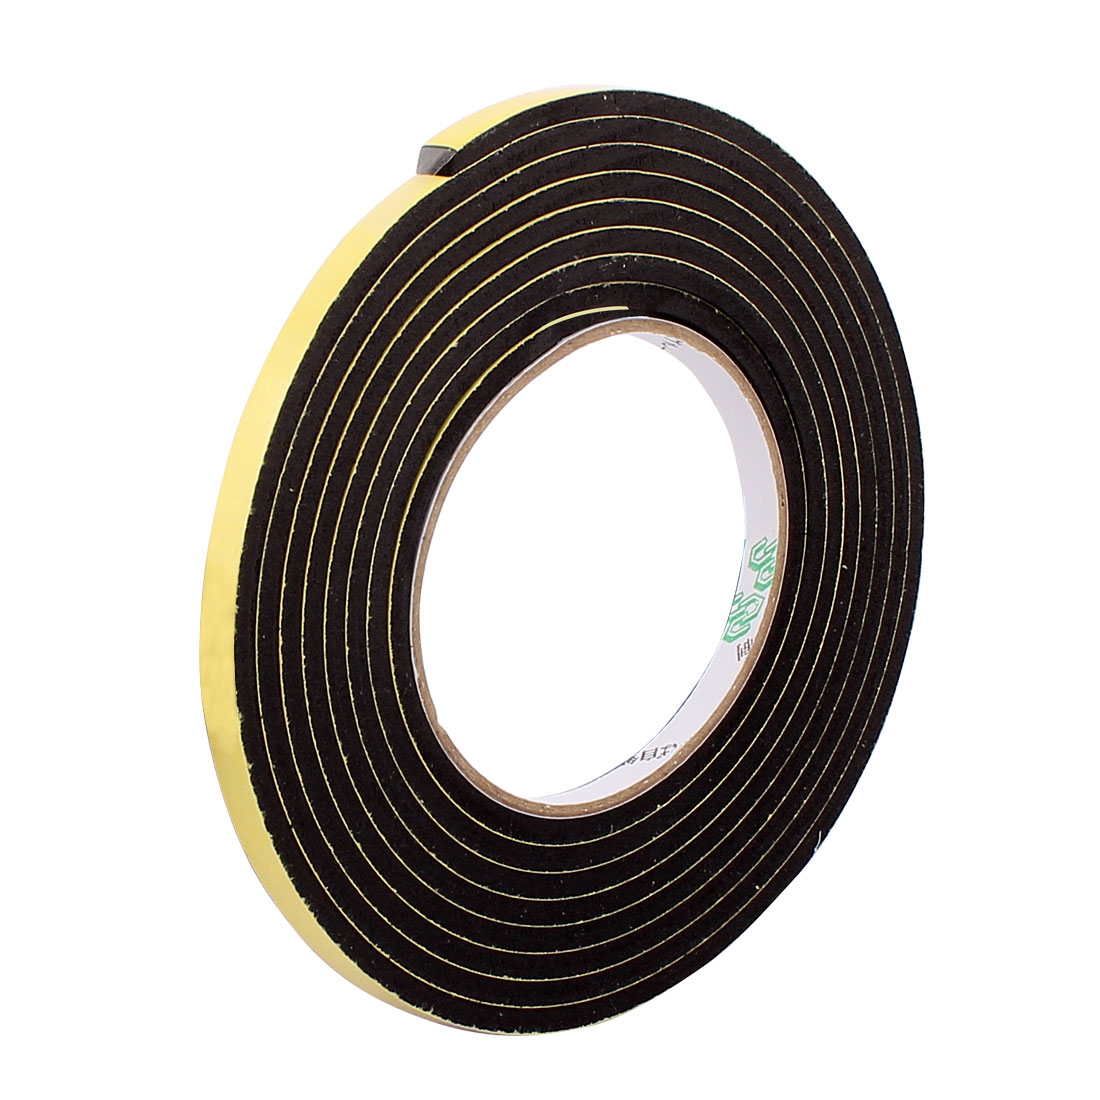 Black EVA 0.8CM Wide 4M Length 3MM Thick Single Sided Shockproof Sponge Tape